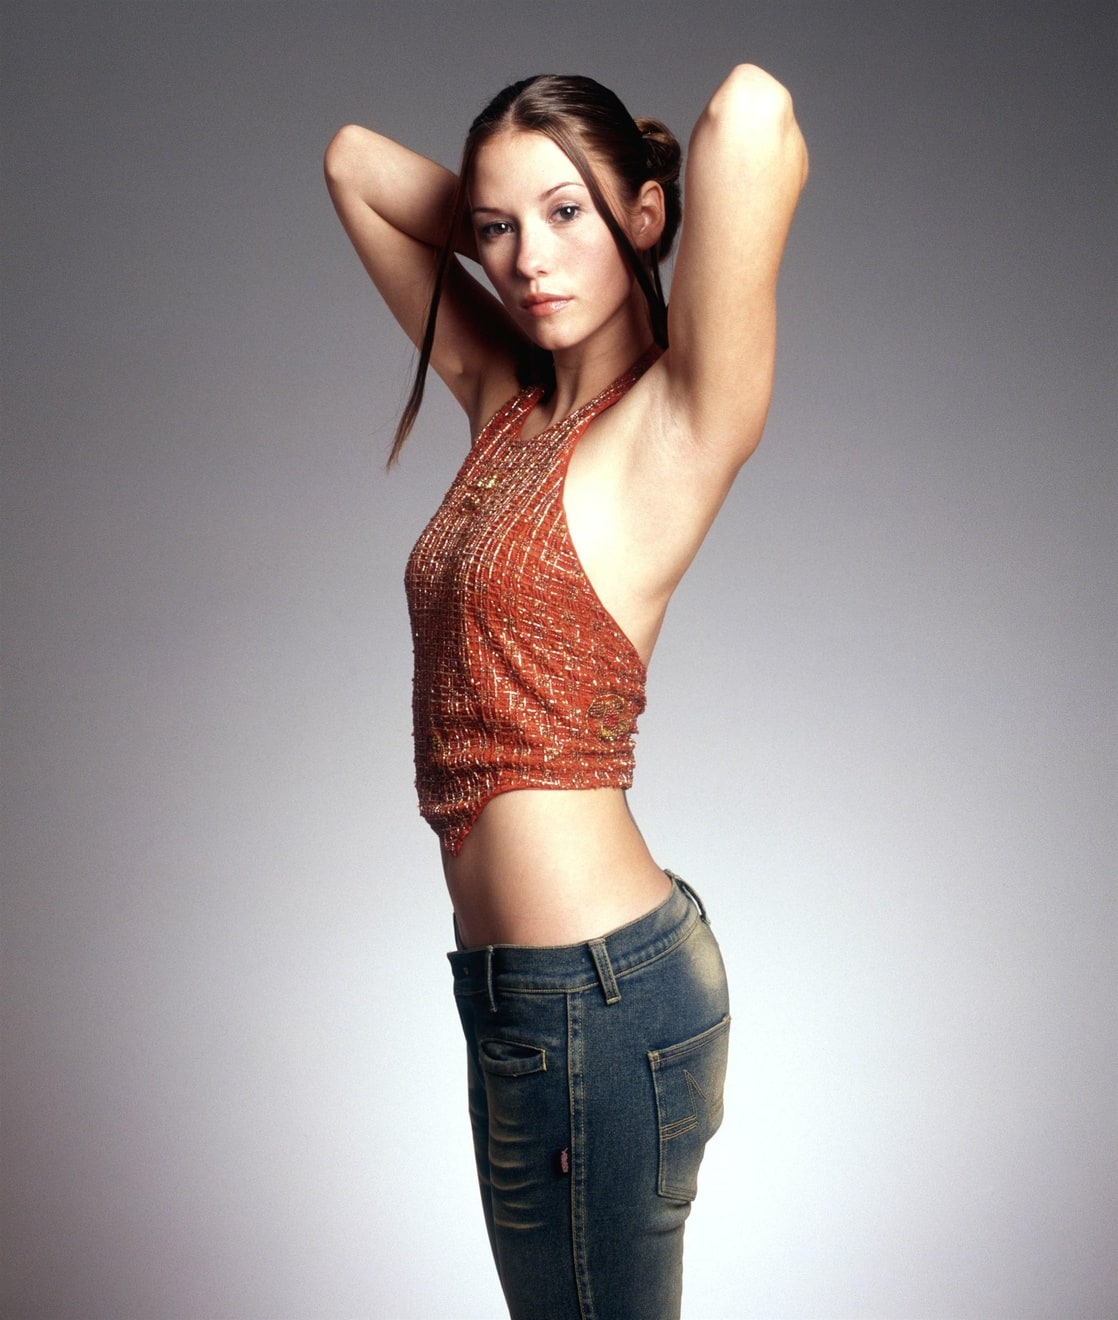 image Jessica biel nude scene in london movie scandalplanetcom